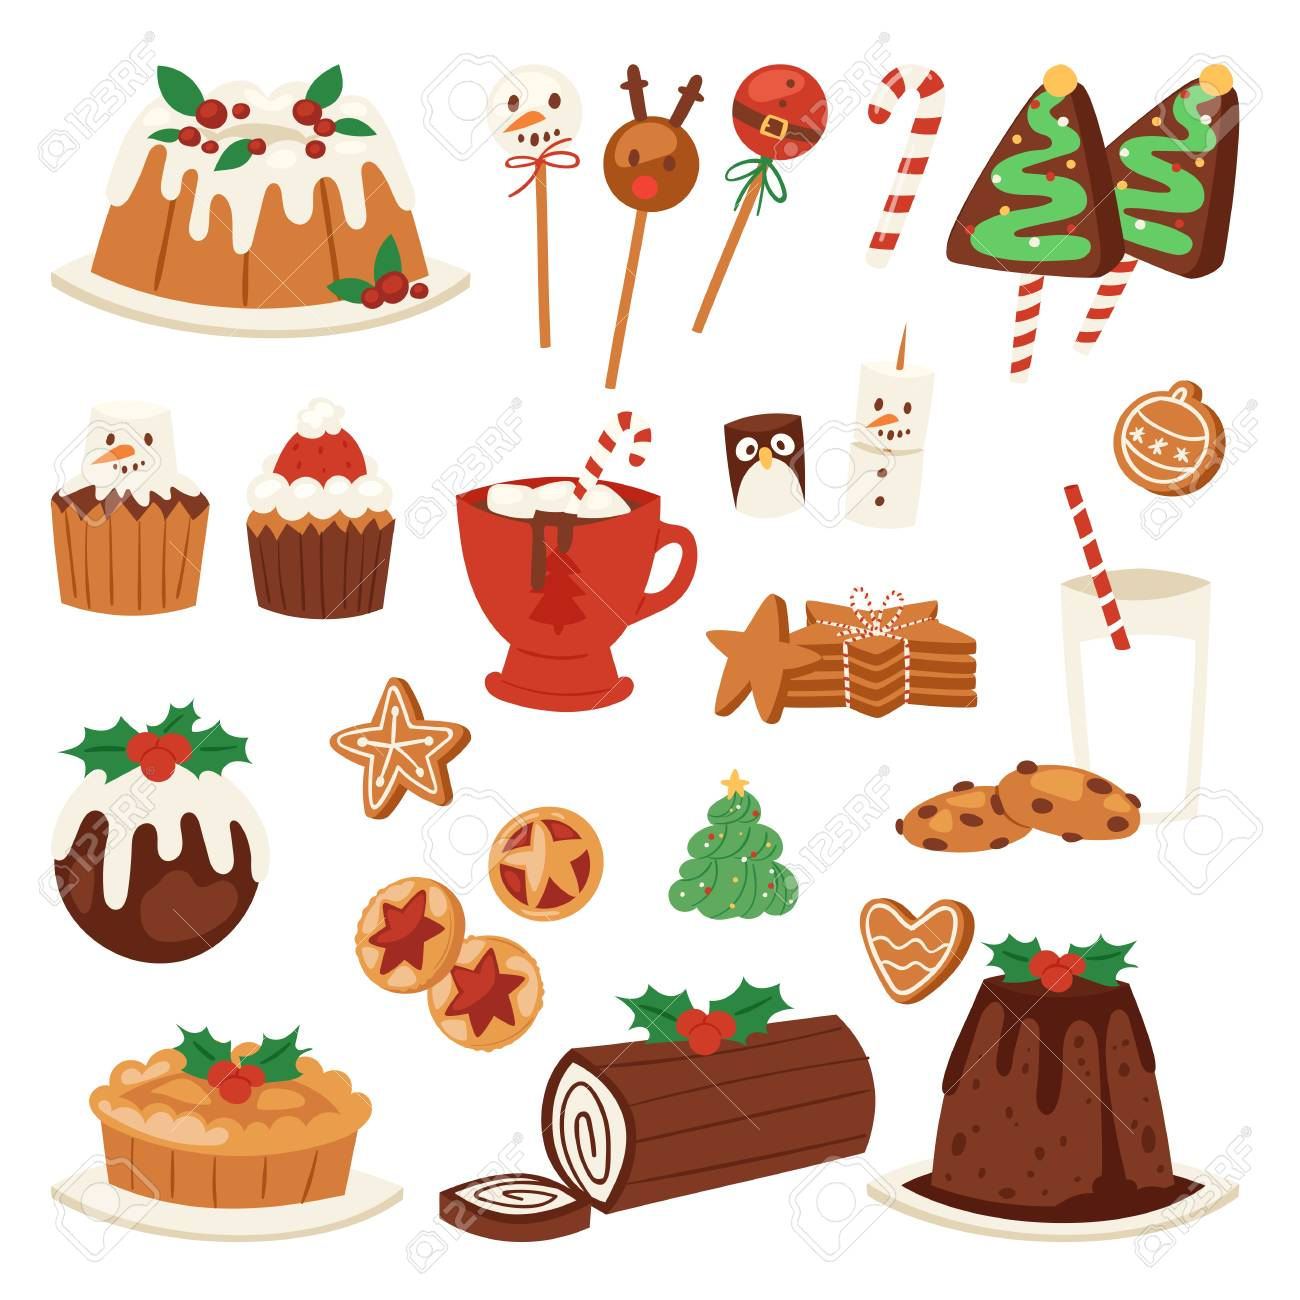 Christmas Food Vector Desserts Holiday Decoration For Family